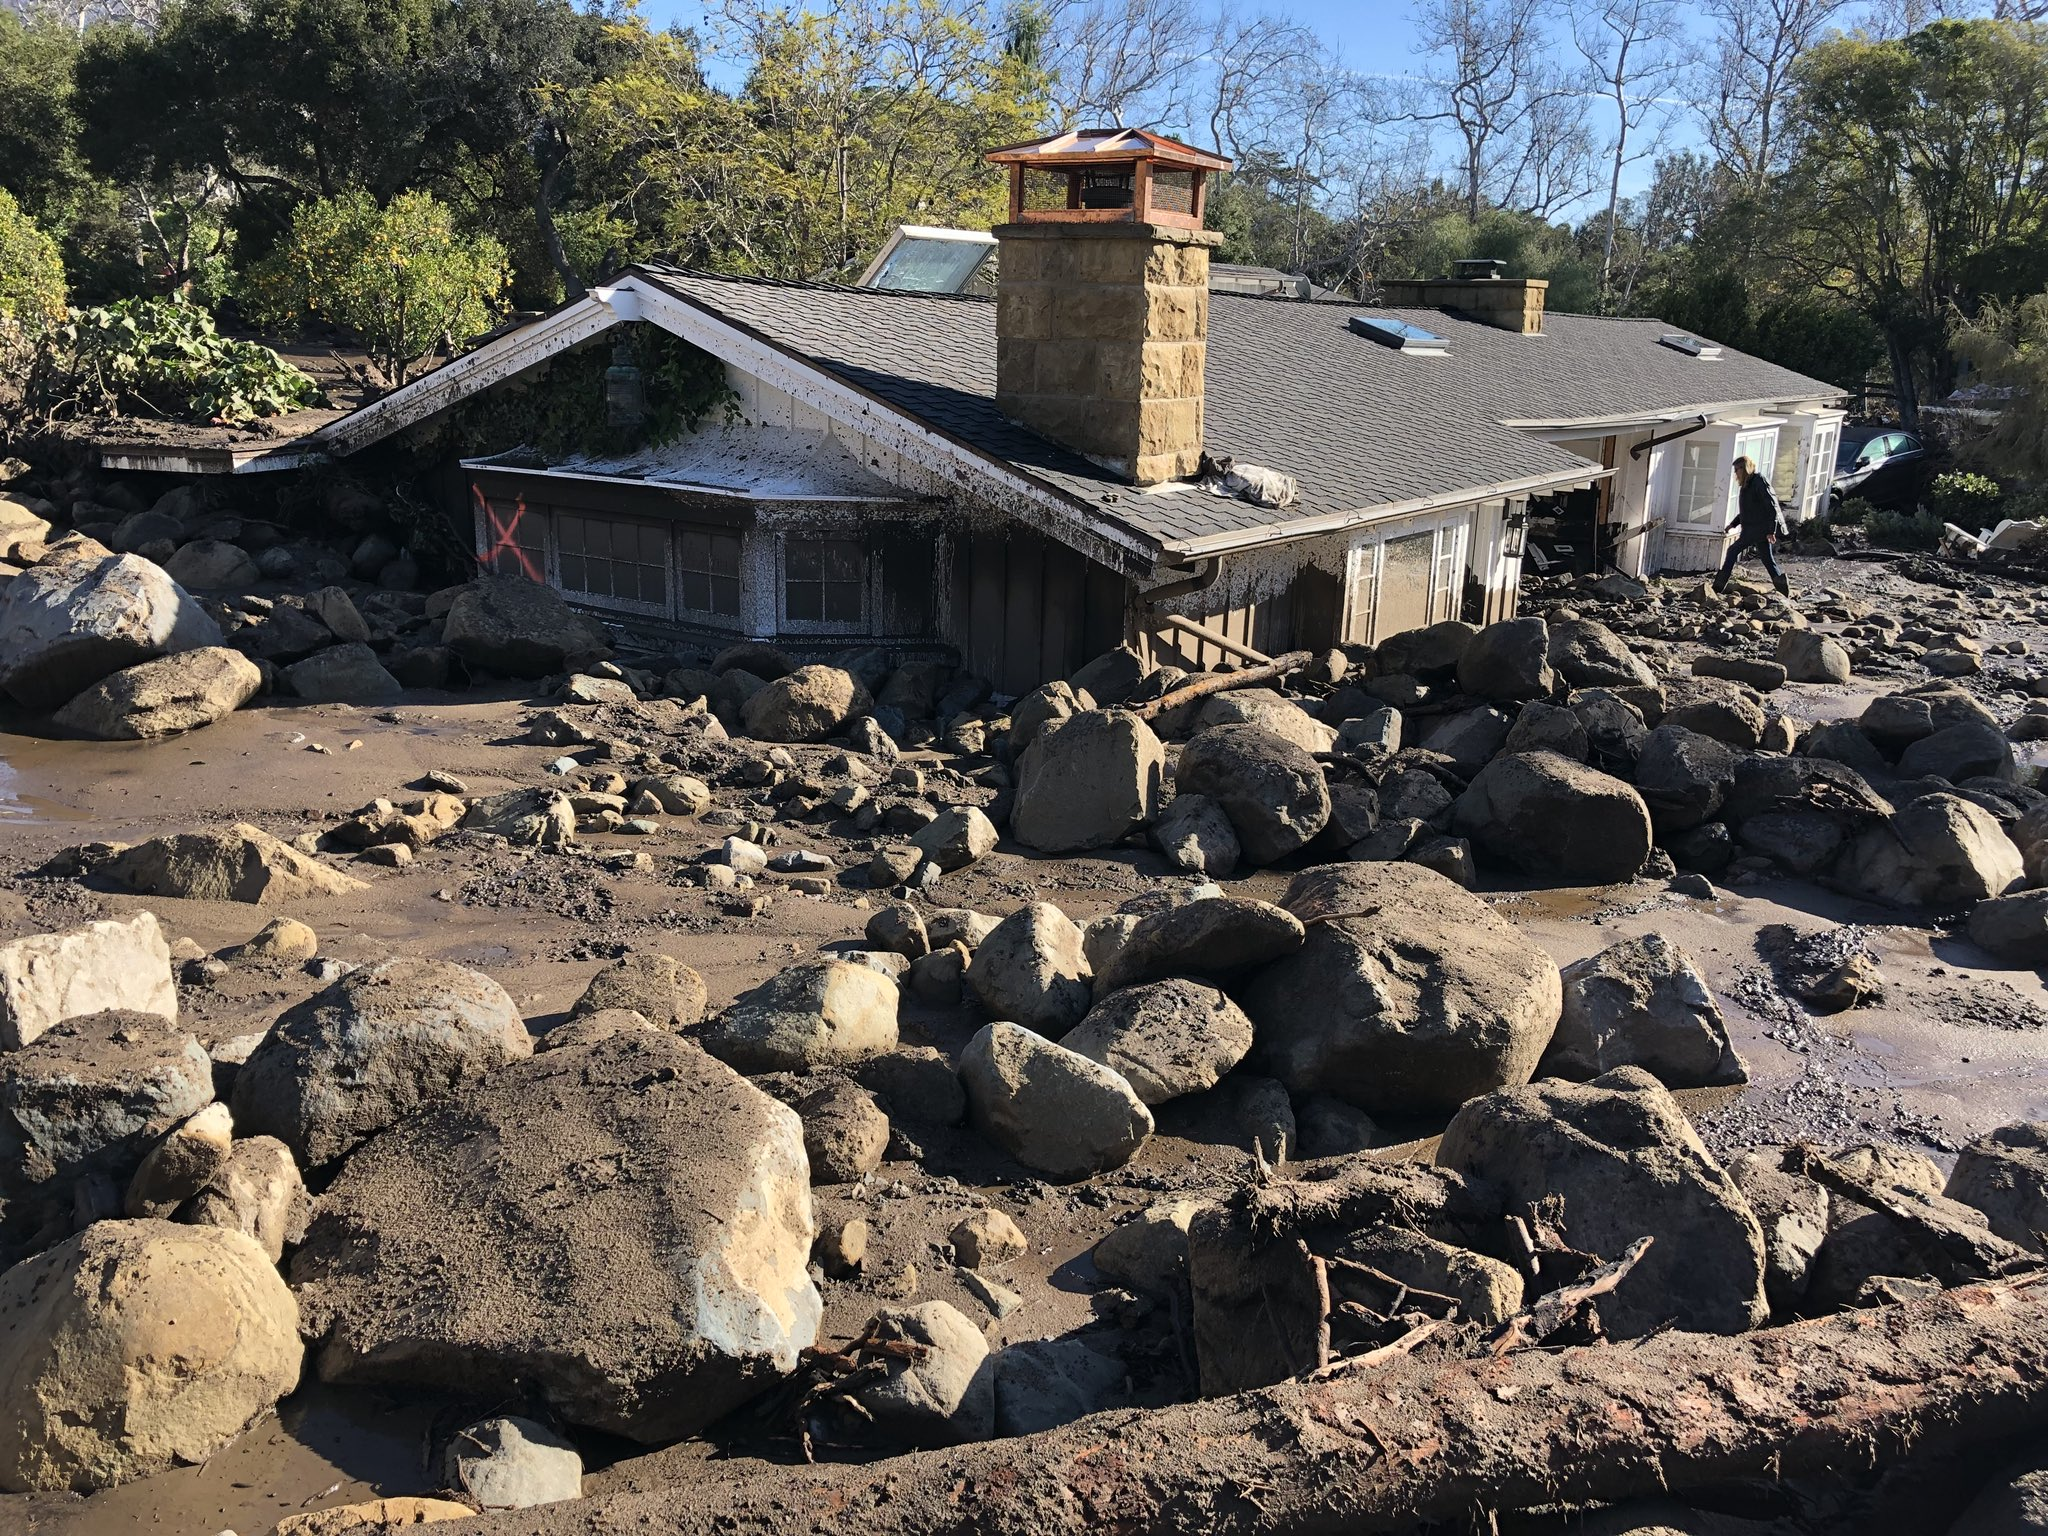 Kerry Mann navigates the large boulders and mudflow that destroyed the home of her friend in Montecito. The woman who lives in the home has not been seen since the early hours of Tuesday. (Photo & Caption: Mike Eliason, Santa Barbara County Fire Dept.)